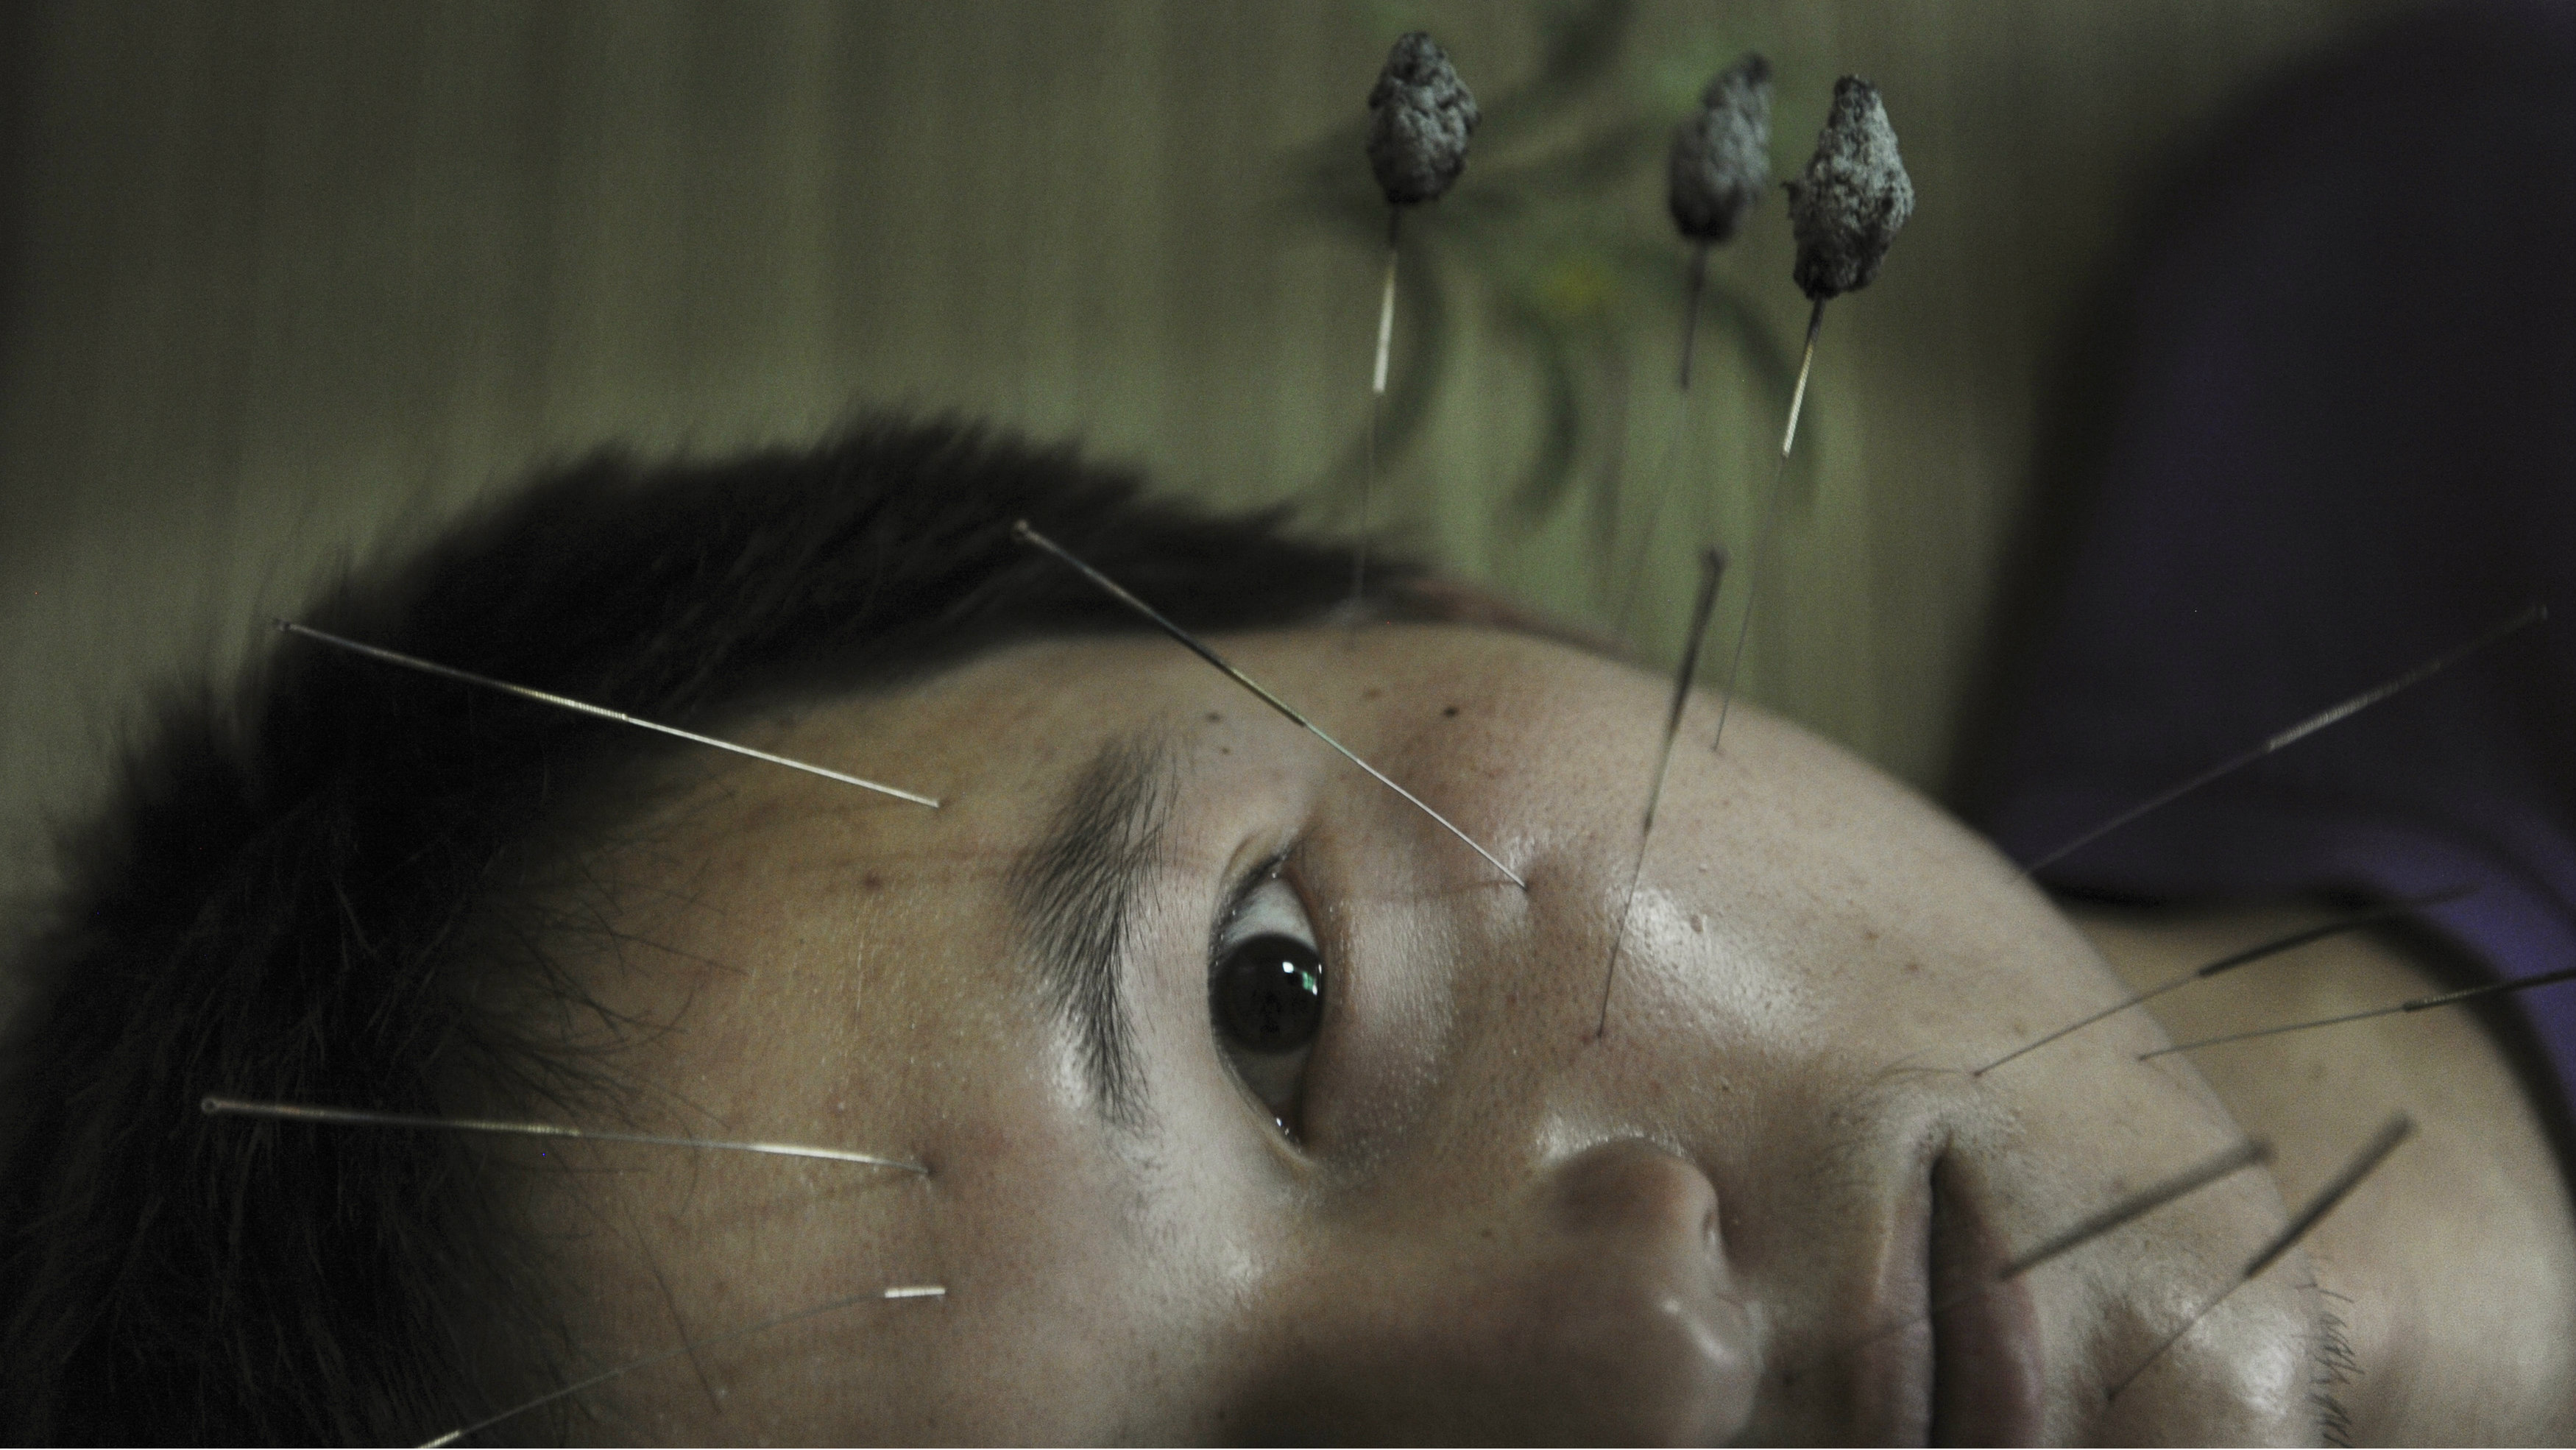 A patient suffering from facial paralysis undergoes acupuncture treatment at a traditional Chinese medical hospital in Jiaxing, Zhejiang province, July 11, 2012. REUTERS/Stringer (CHINA - Tags: HEALTH SOCIETY TPX IMAGES OF THE DAY) CHINA OUT. NO COMMERCIAL OR EDITORIAL SALES IN CHINA